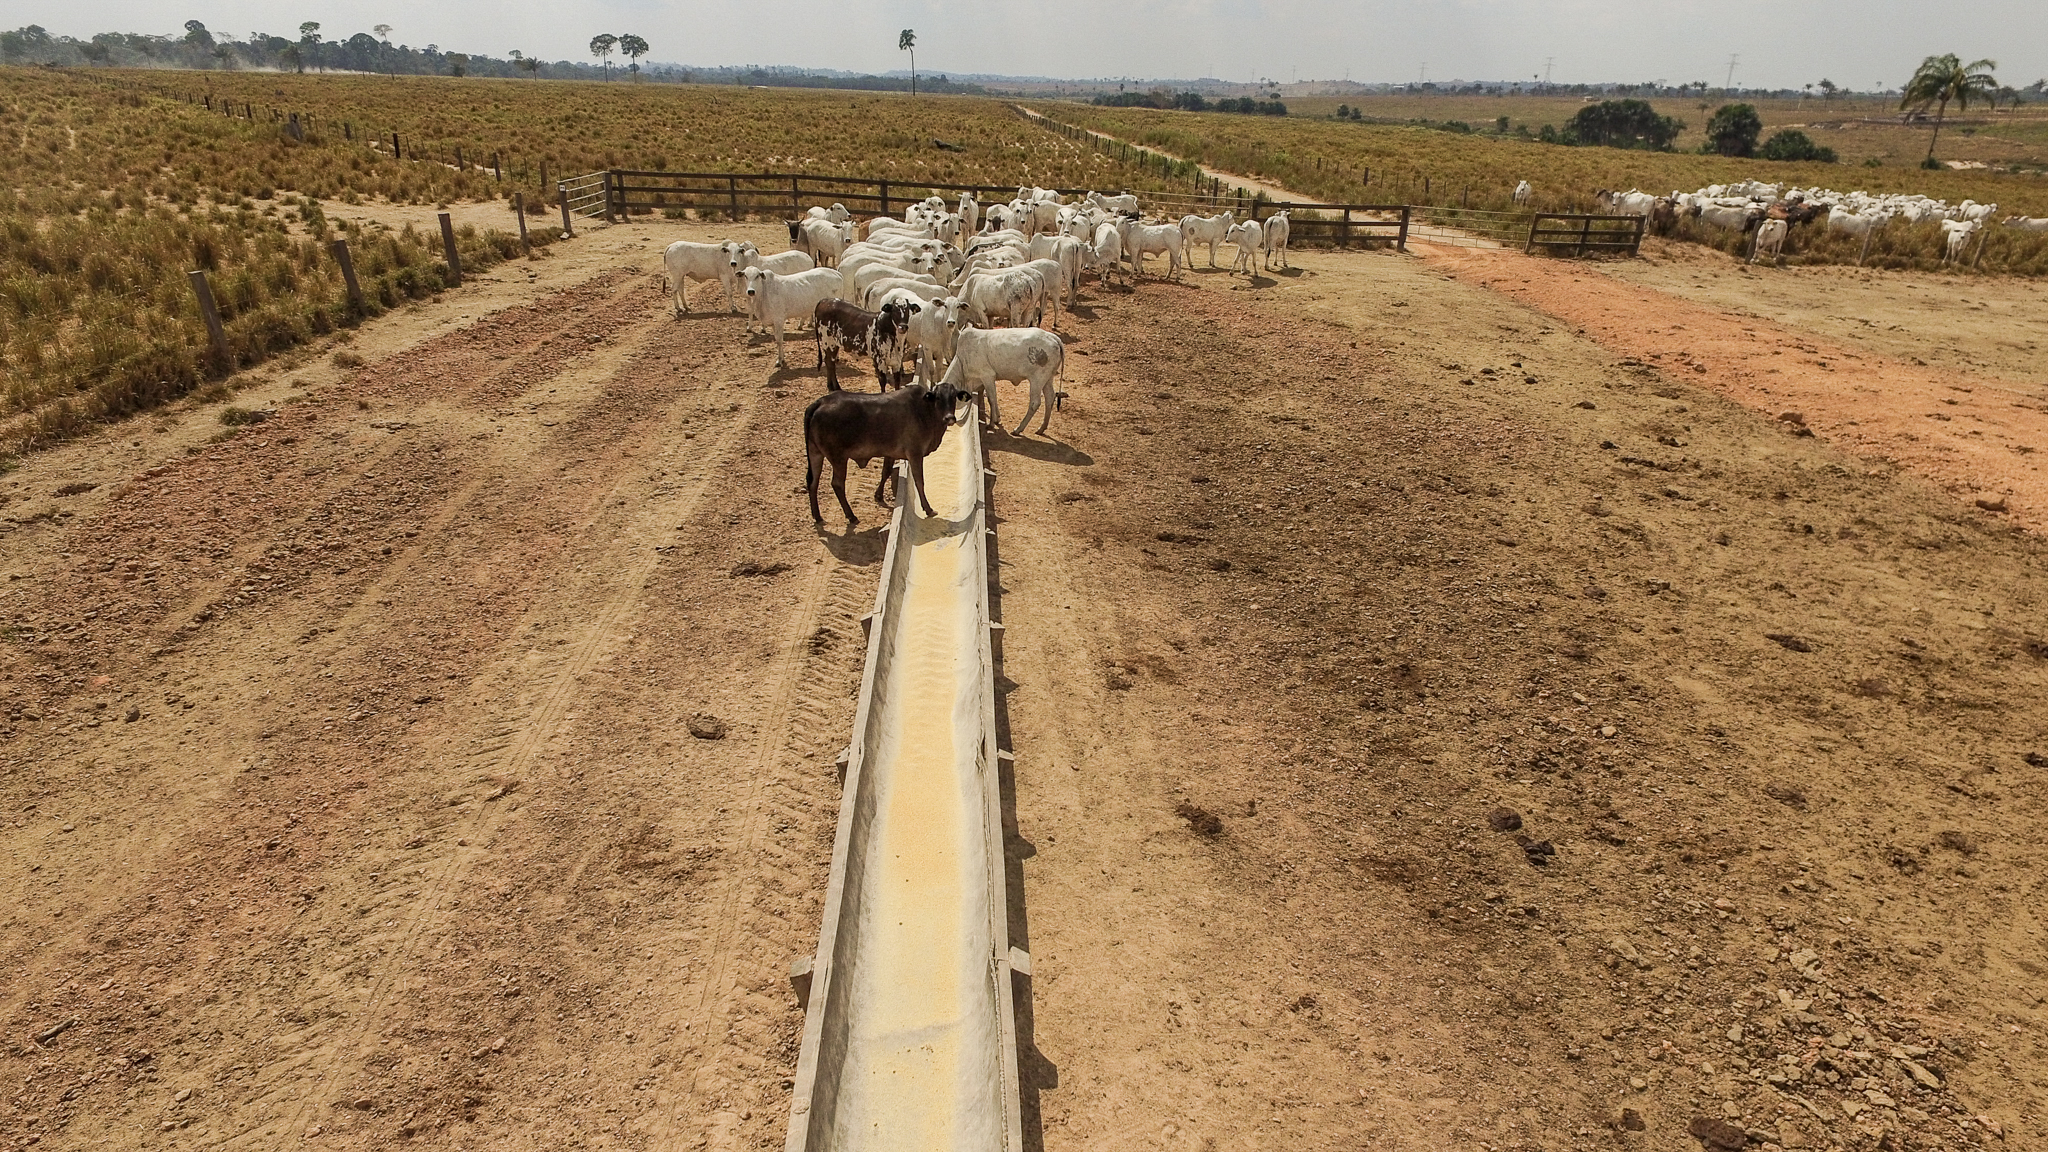 At the feeding troughs on the Nossa Senhora Aparecida ranch, the white cows are a breed called Nelore. The brown and black cows are Aberdeen angus, which is a cross between Nelore and Angus. Photograph by Christina Selby